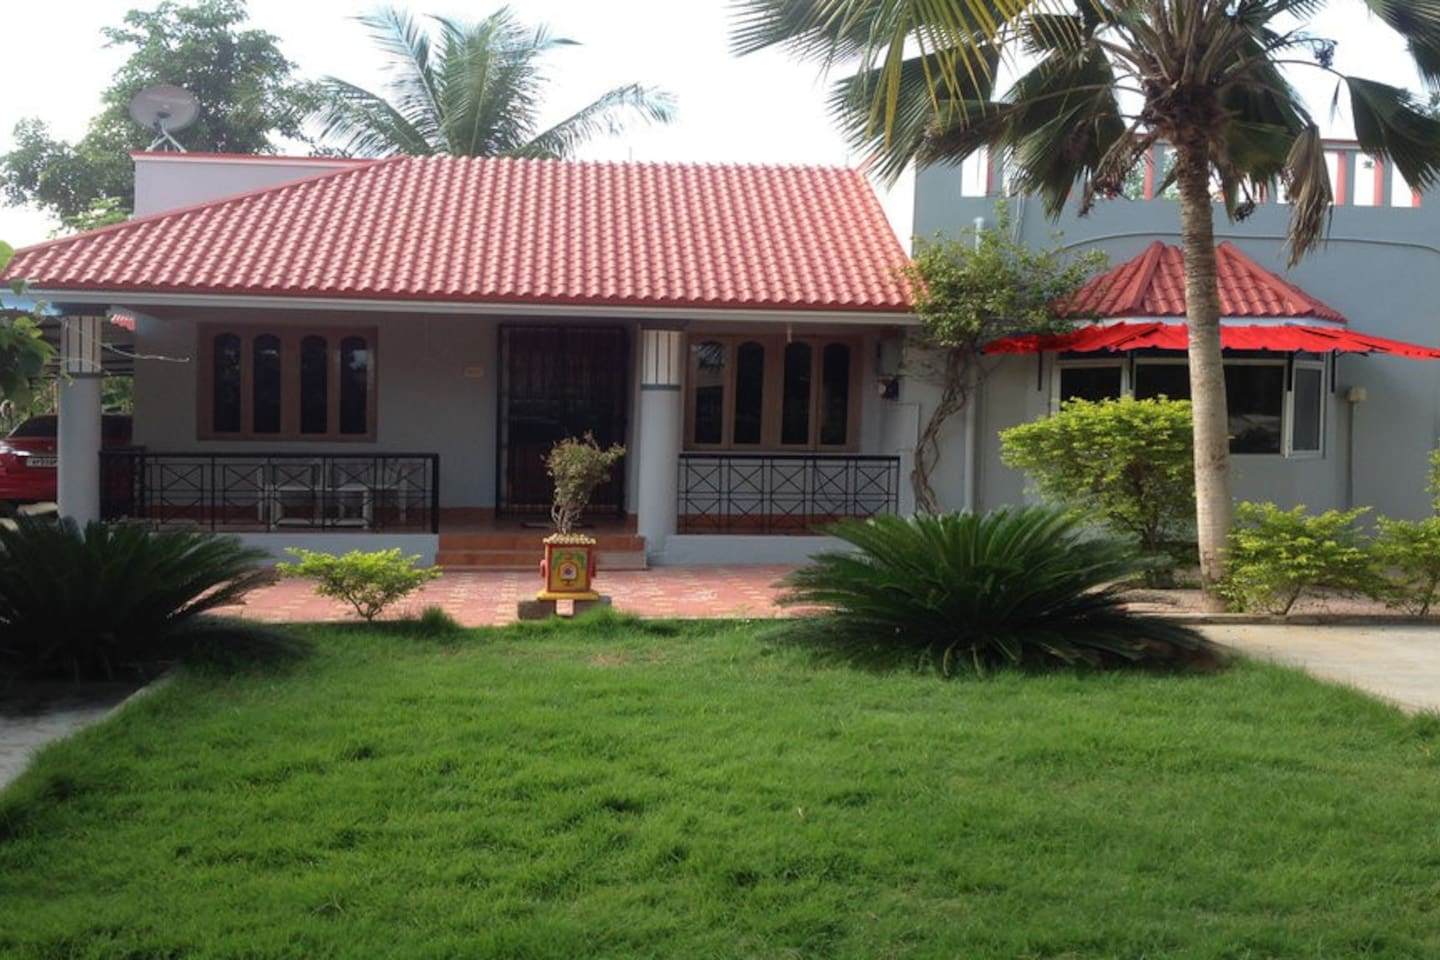 Luxurious & fully furnished resort home